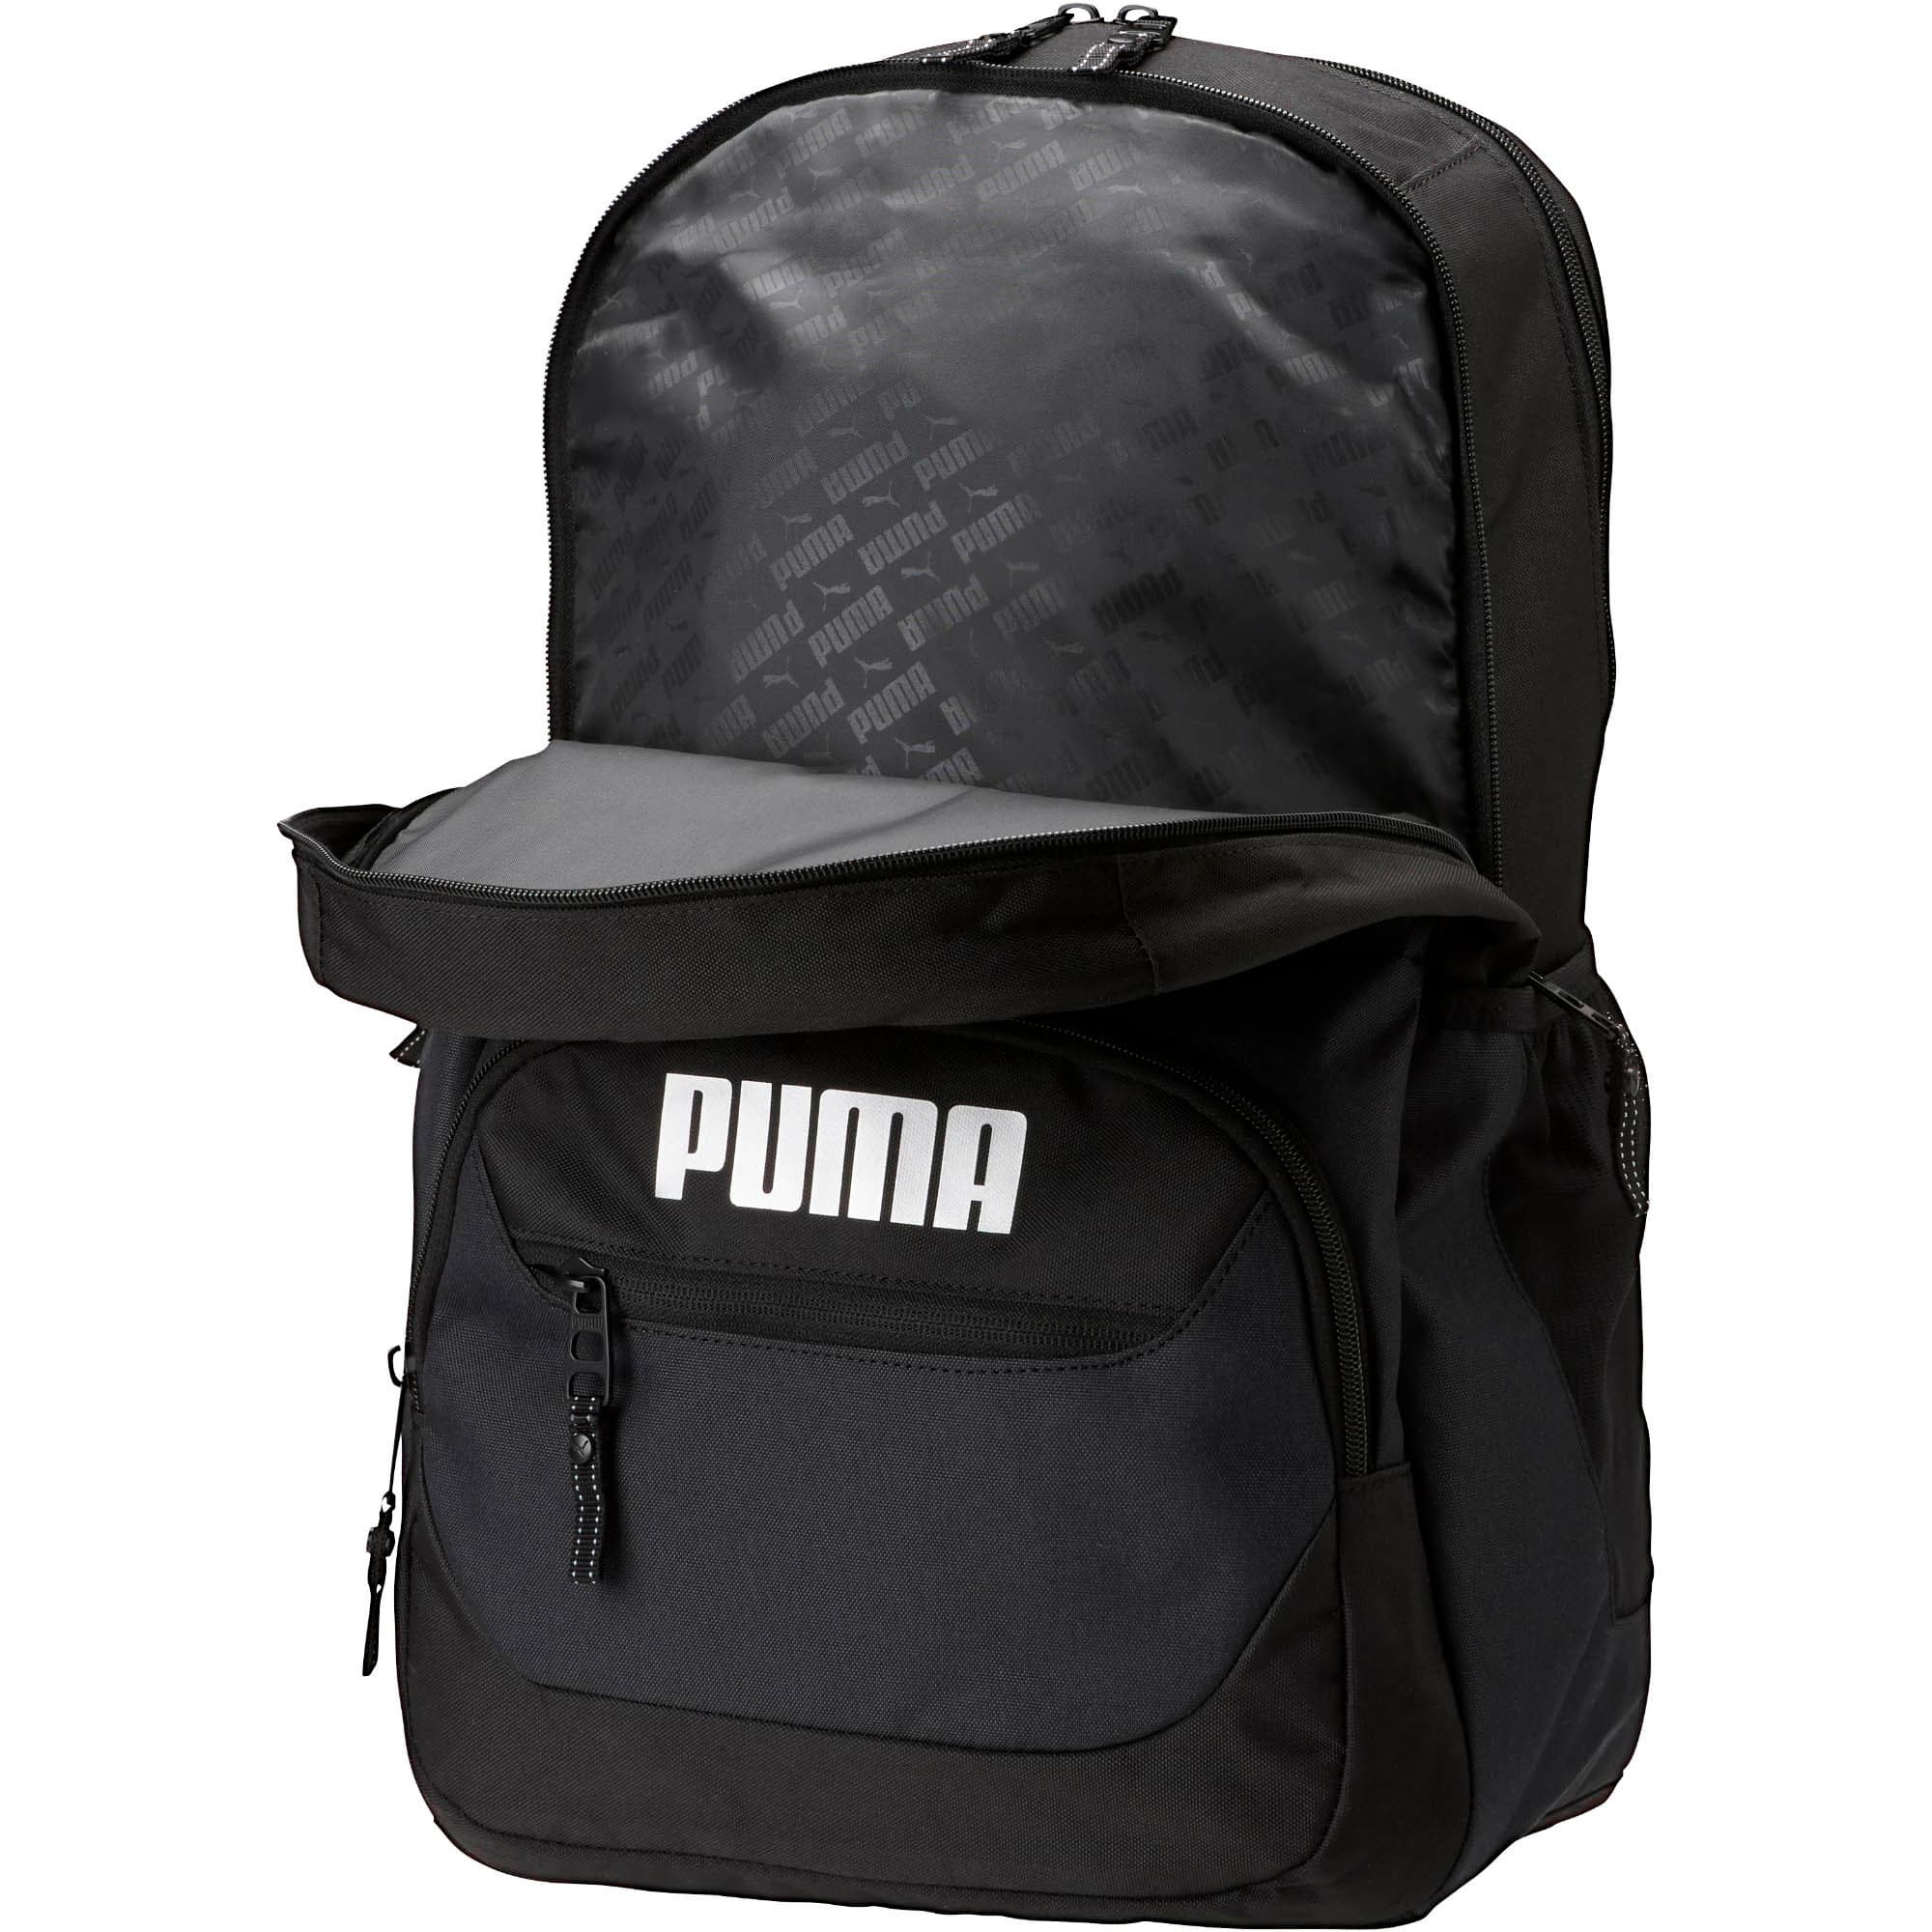 Thumbnail 2 of PUMA Everready Backpack, BLACK, medium